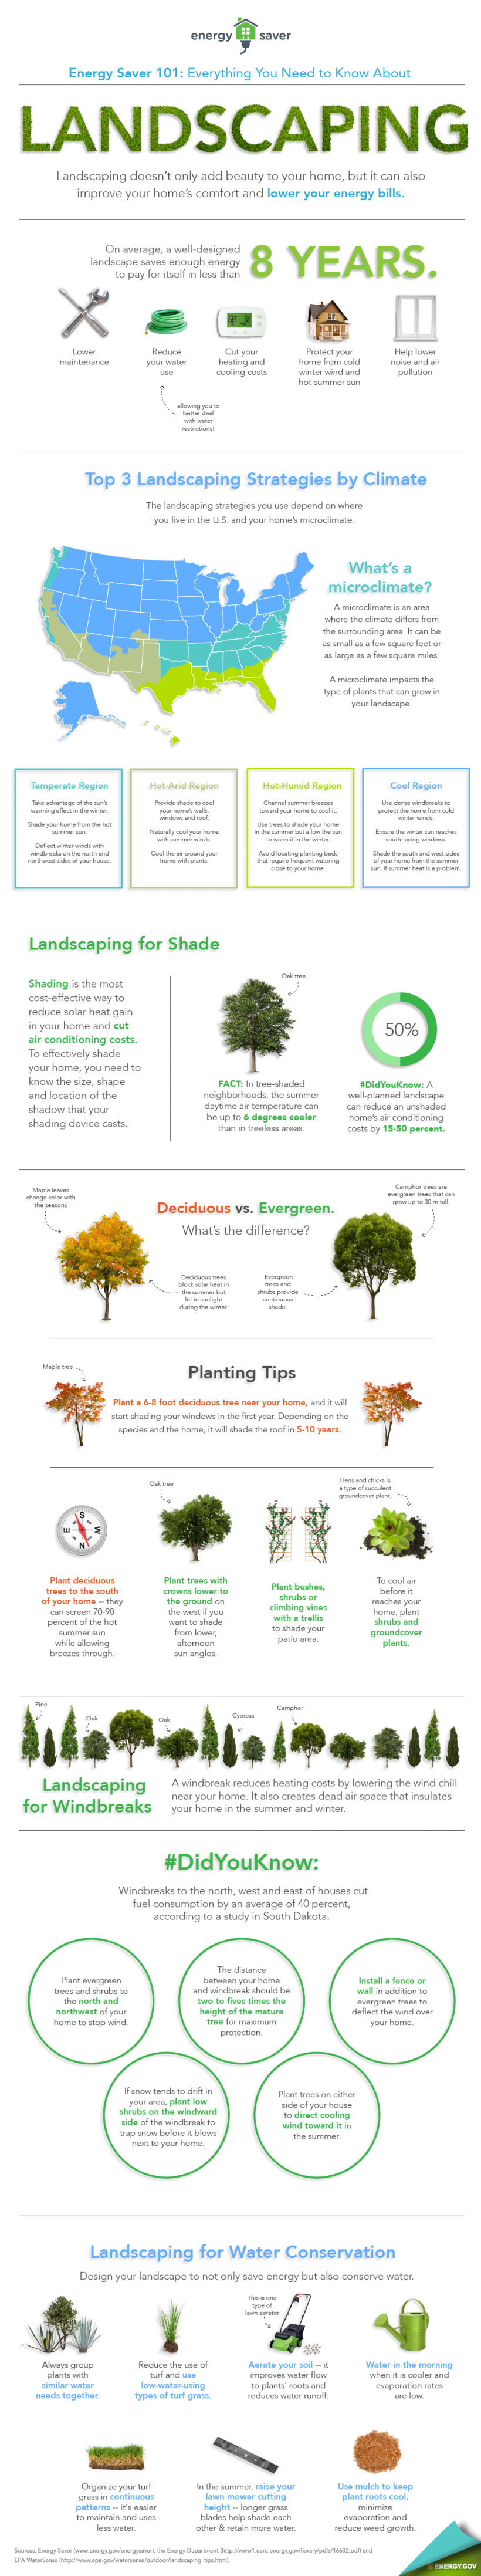 Our Energy Saver 101 infographic highlights everything you need to know to landscape for energy savings. | Infographic by Sarah Gerrity, Energy Department.